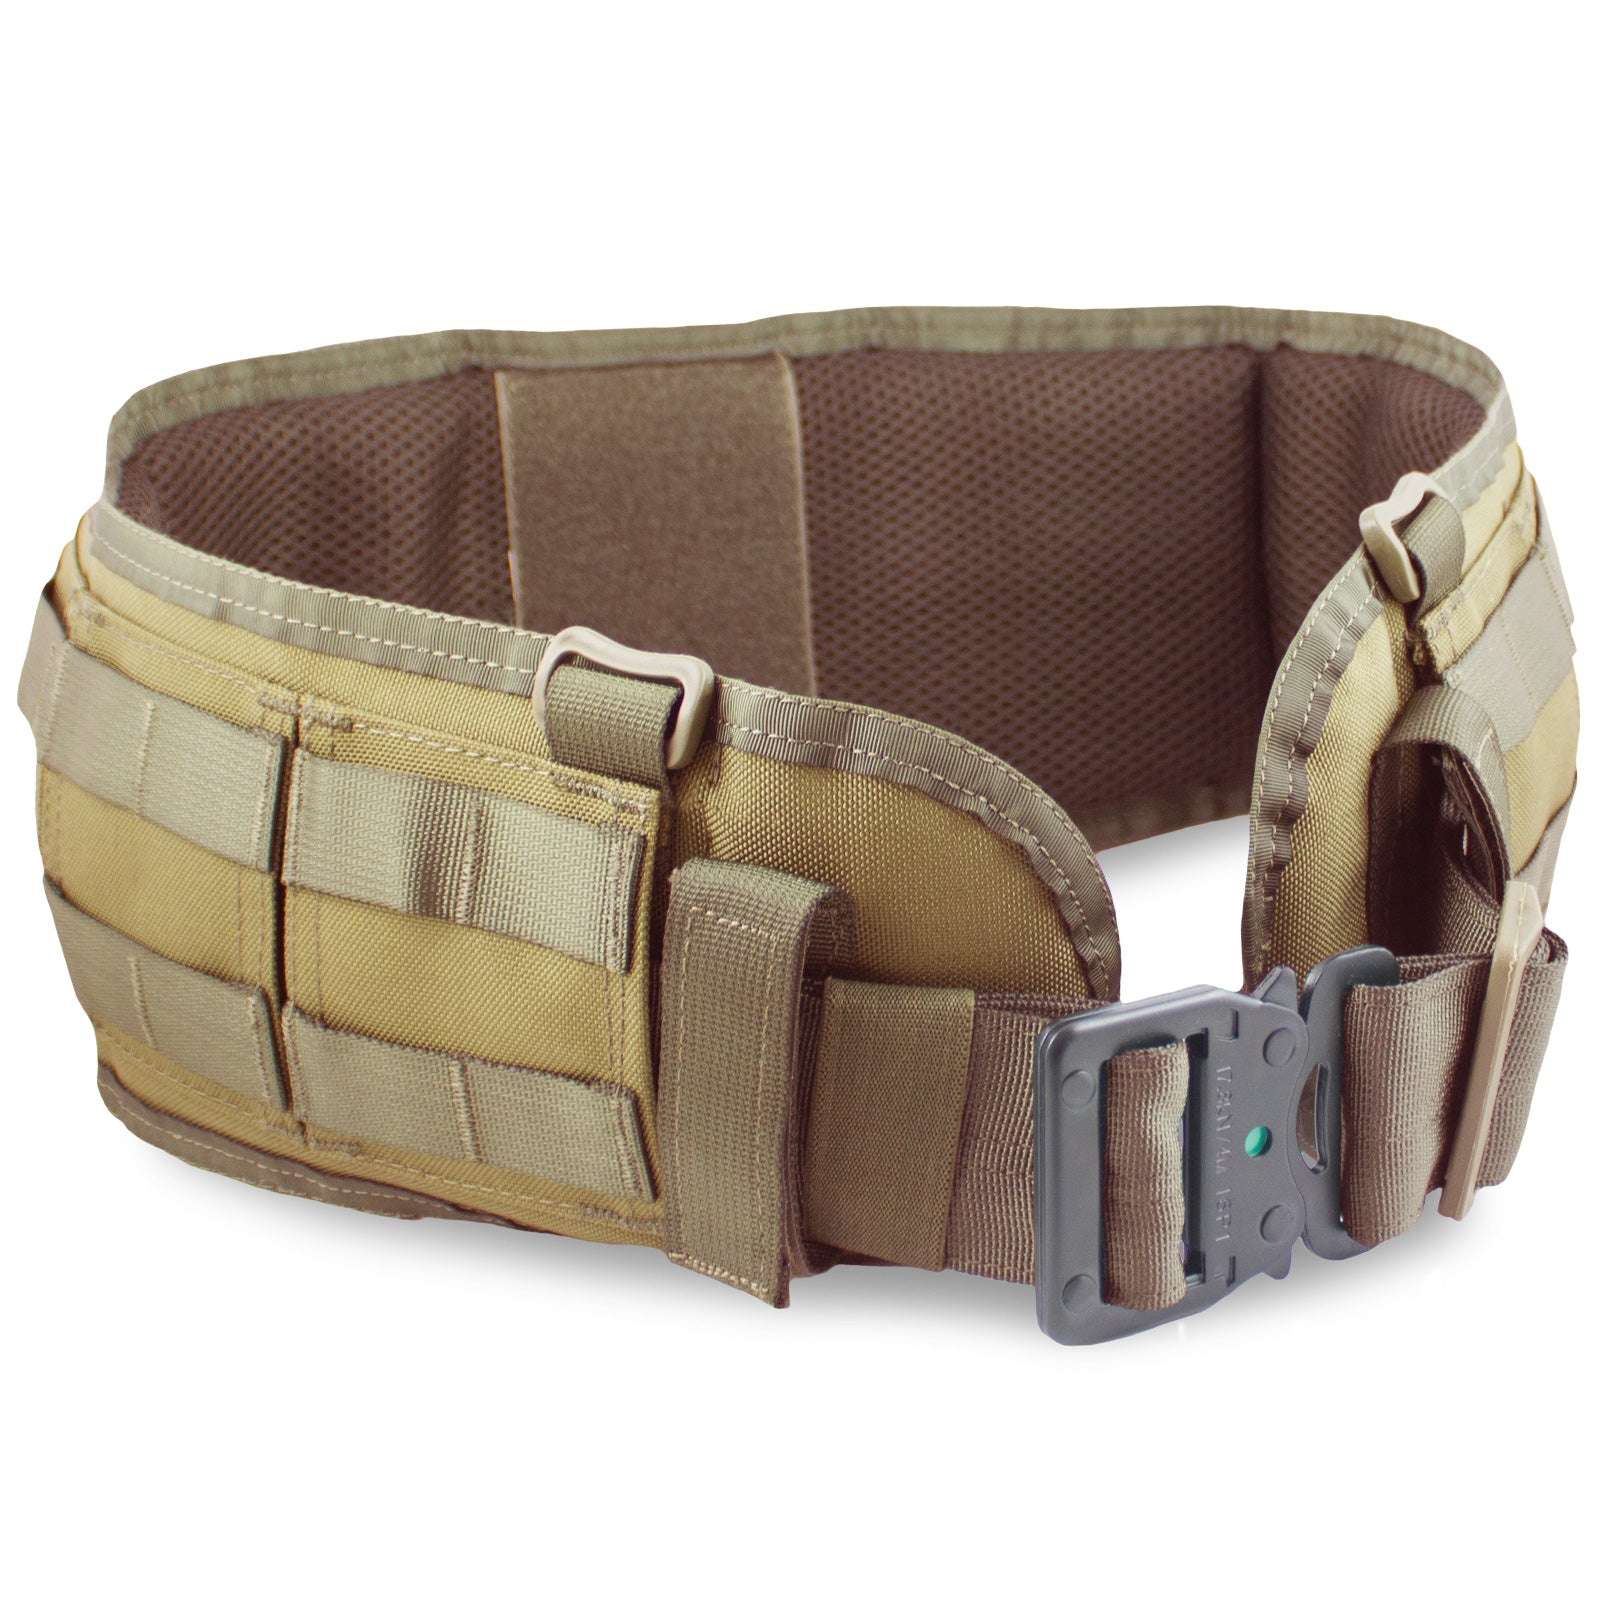 MKII Padded MOLLE Belt - Bulldog Tactical Gear